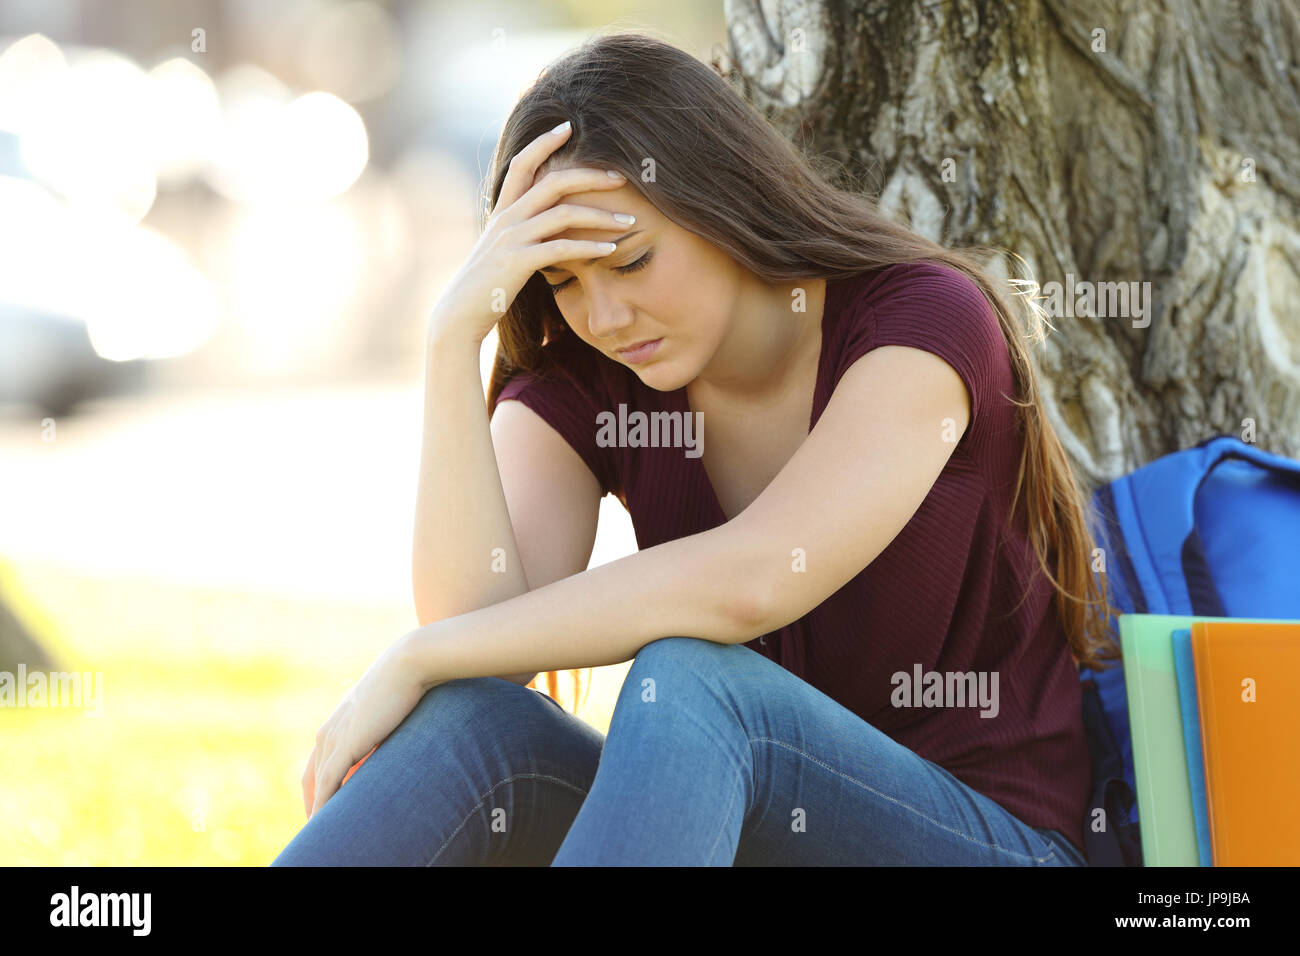 Single concerned student lamenting alone outdoors in a park - Stock Image